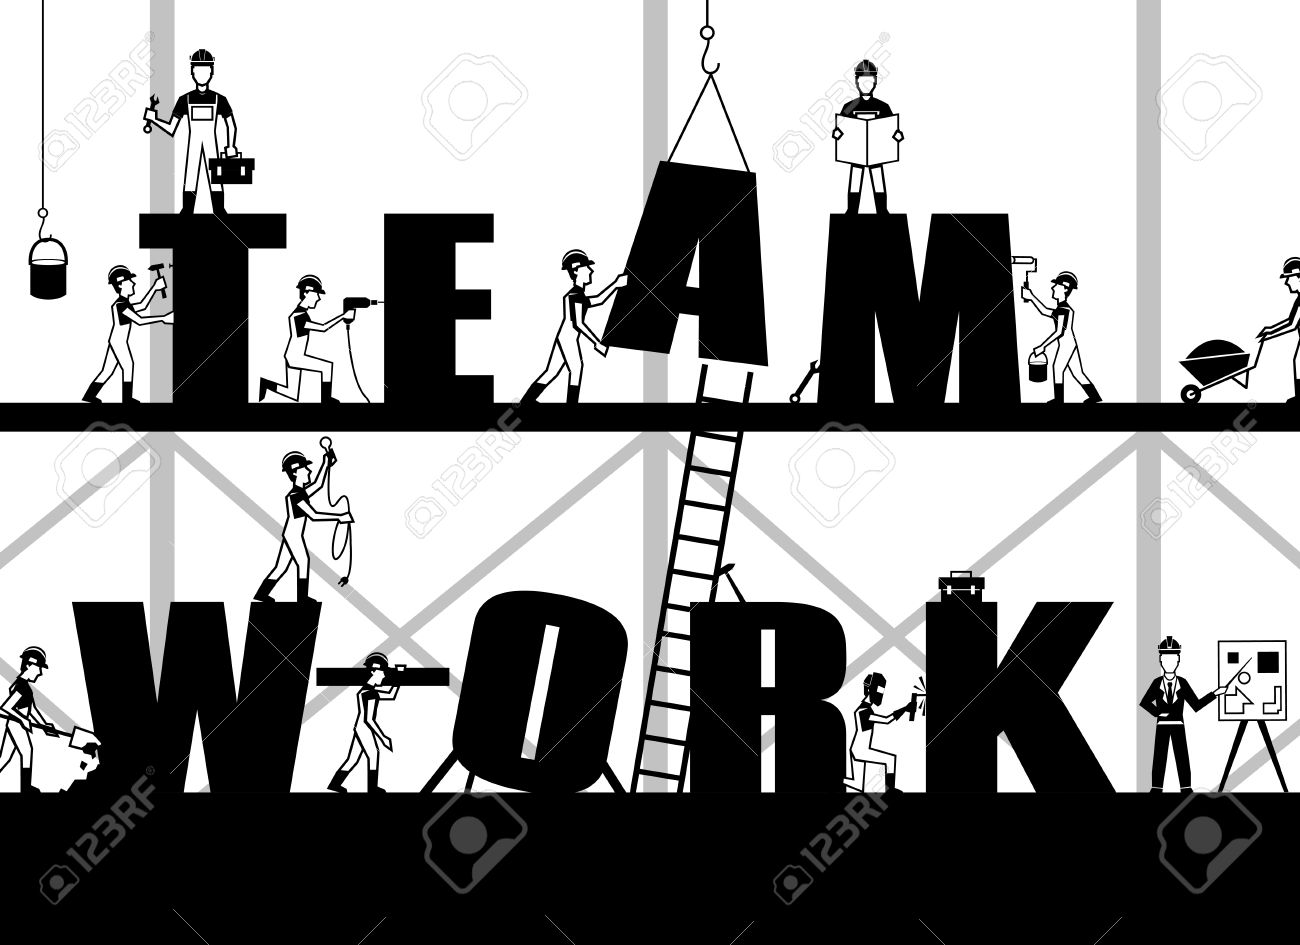 35434773-Teamwork-poster-with-construction-process-and-black-builder-people-silhouettes-vector-illus